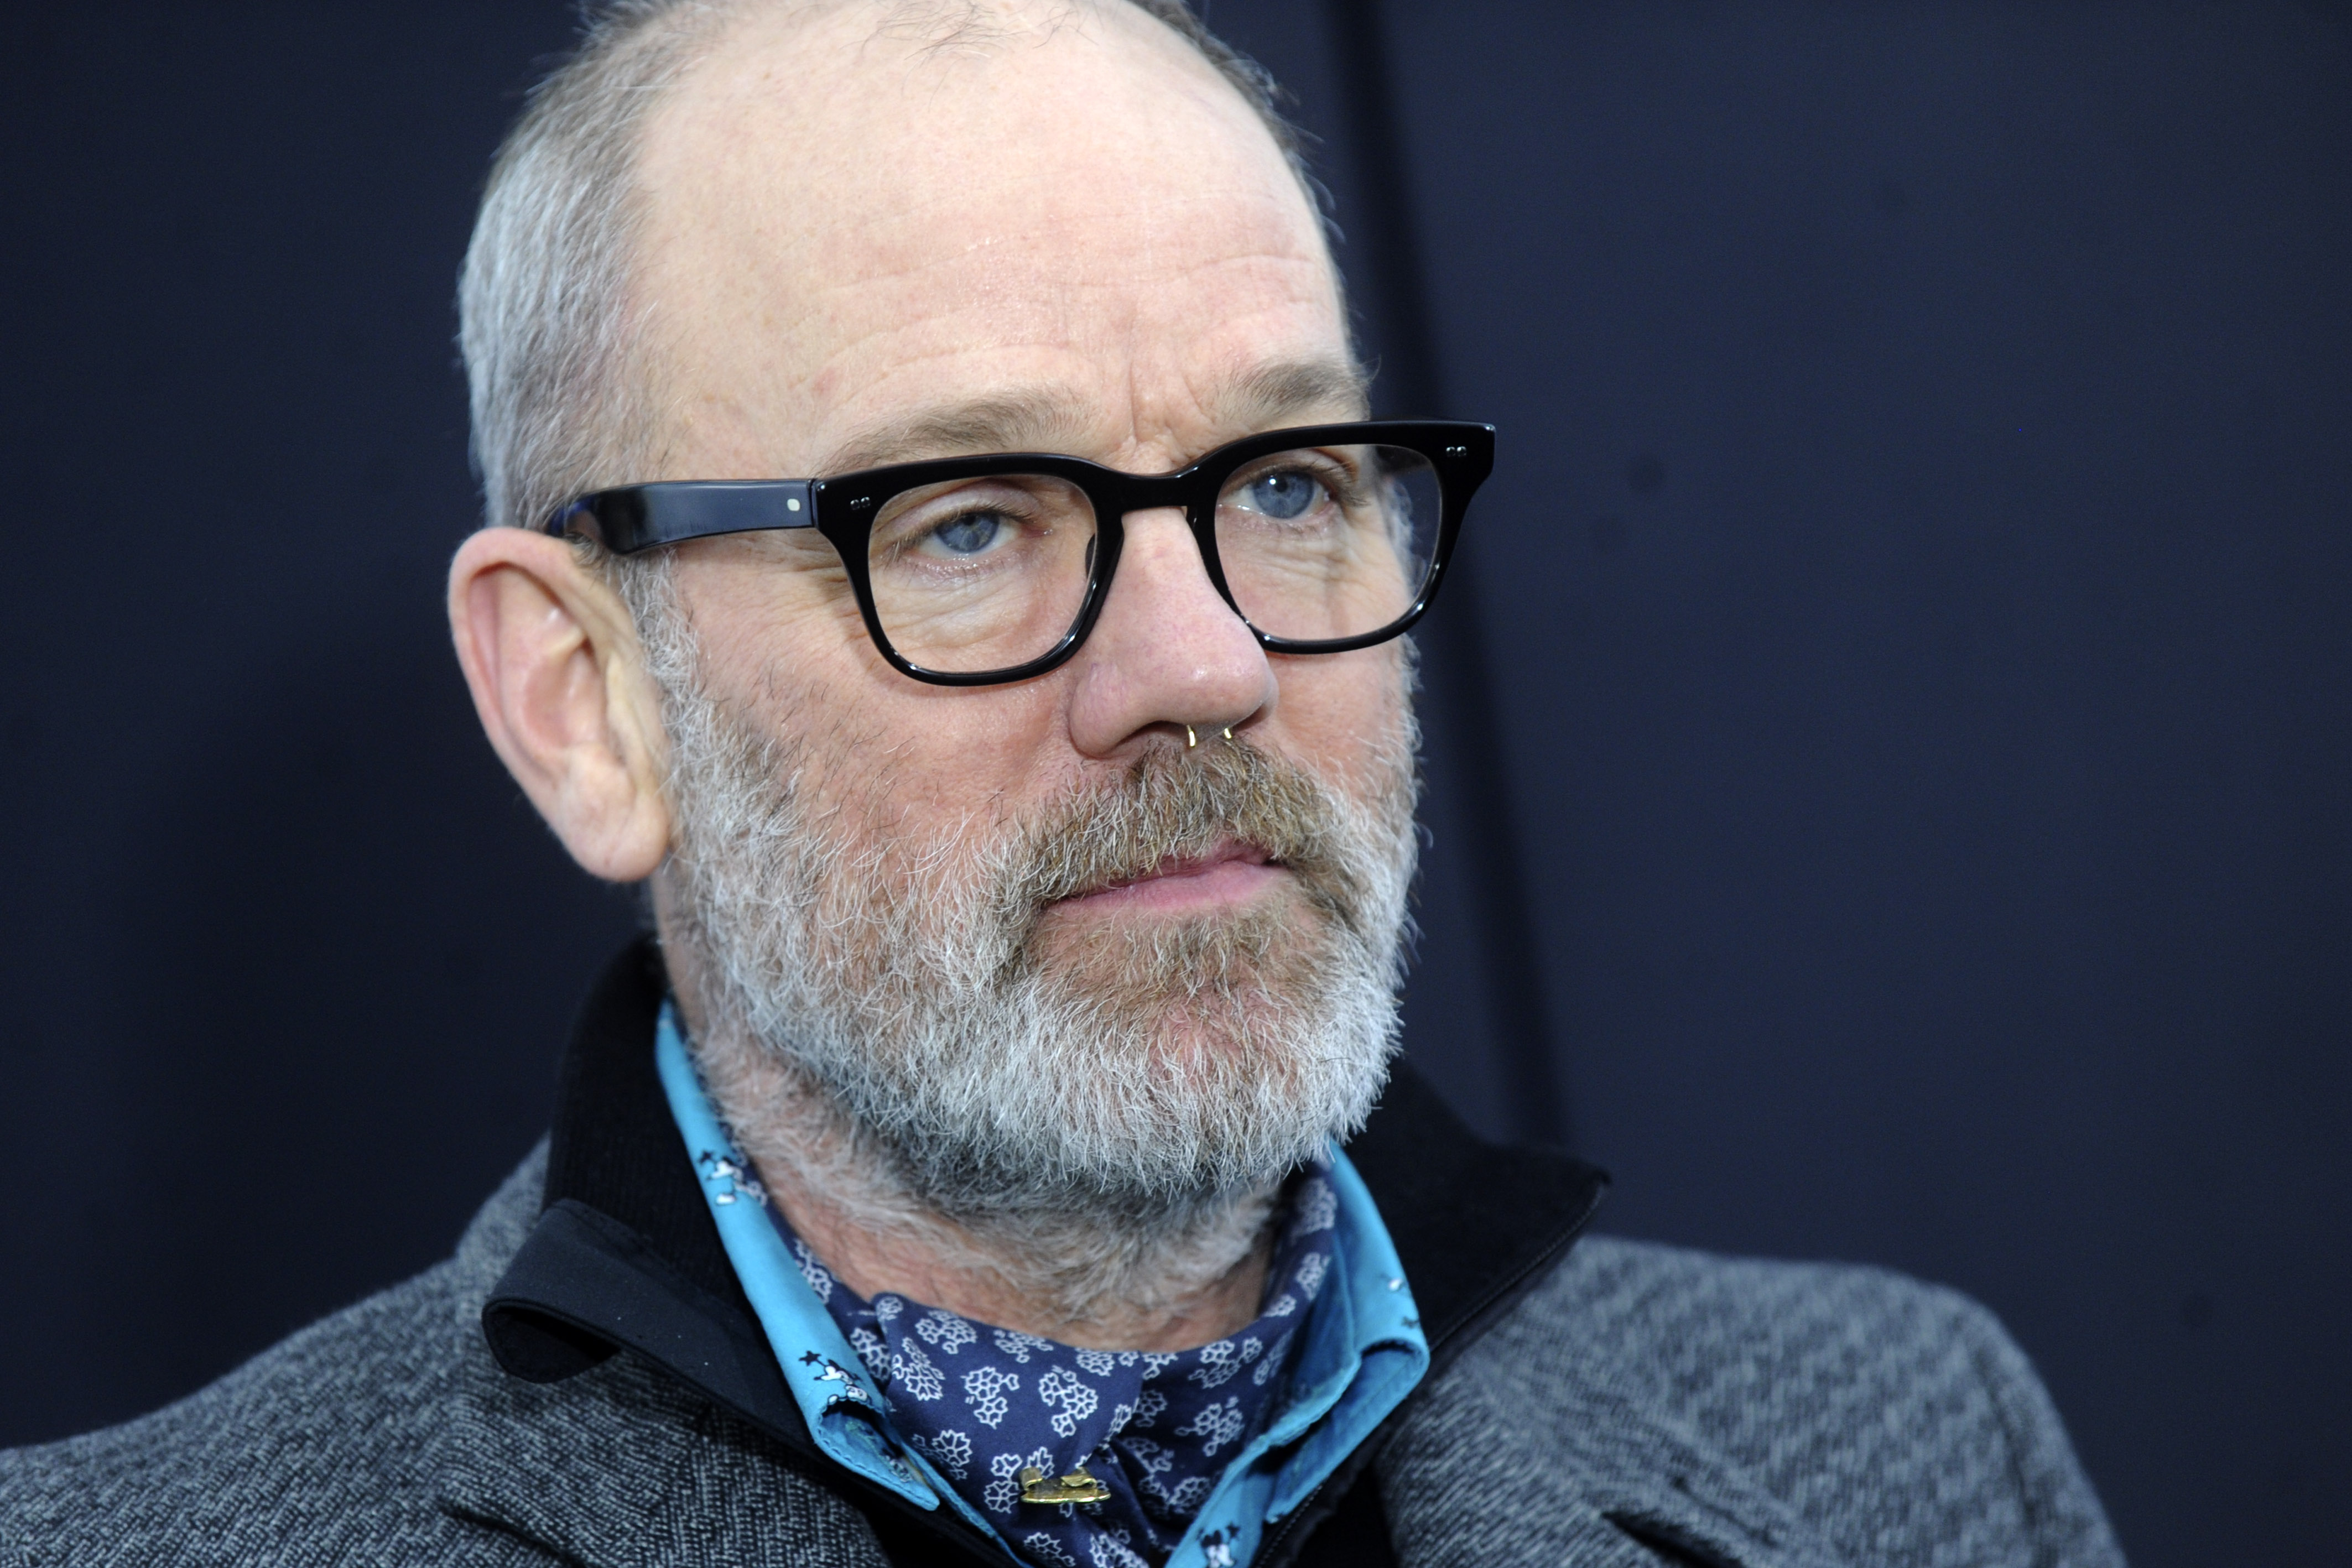 Michael Stipe attending the 'Chappie' New York Premiere at AMC Lincoln Square Theater on March 4, 2015 in New York City